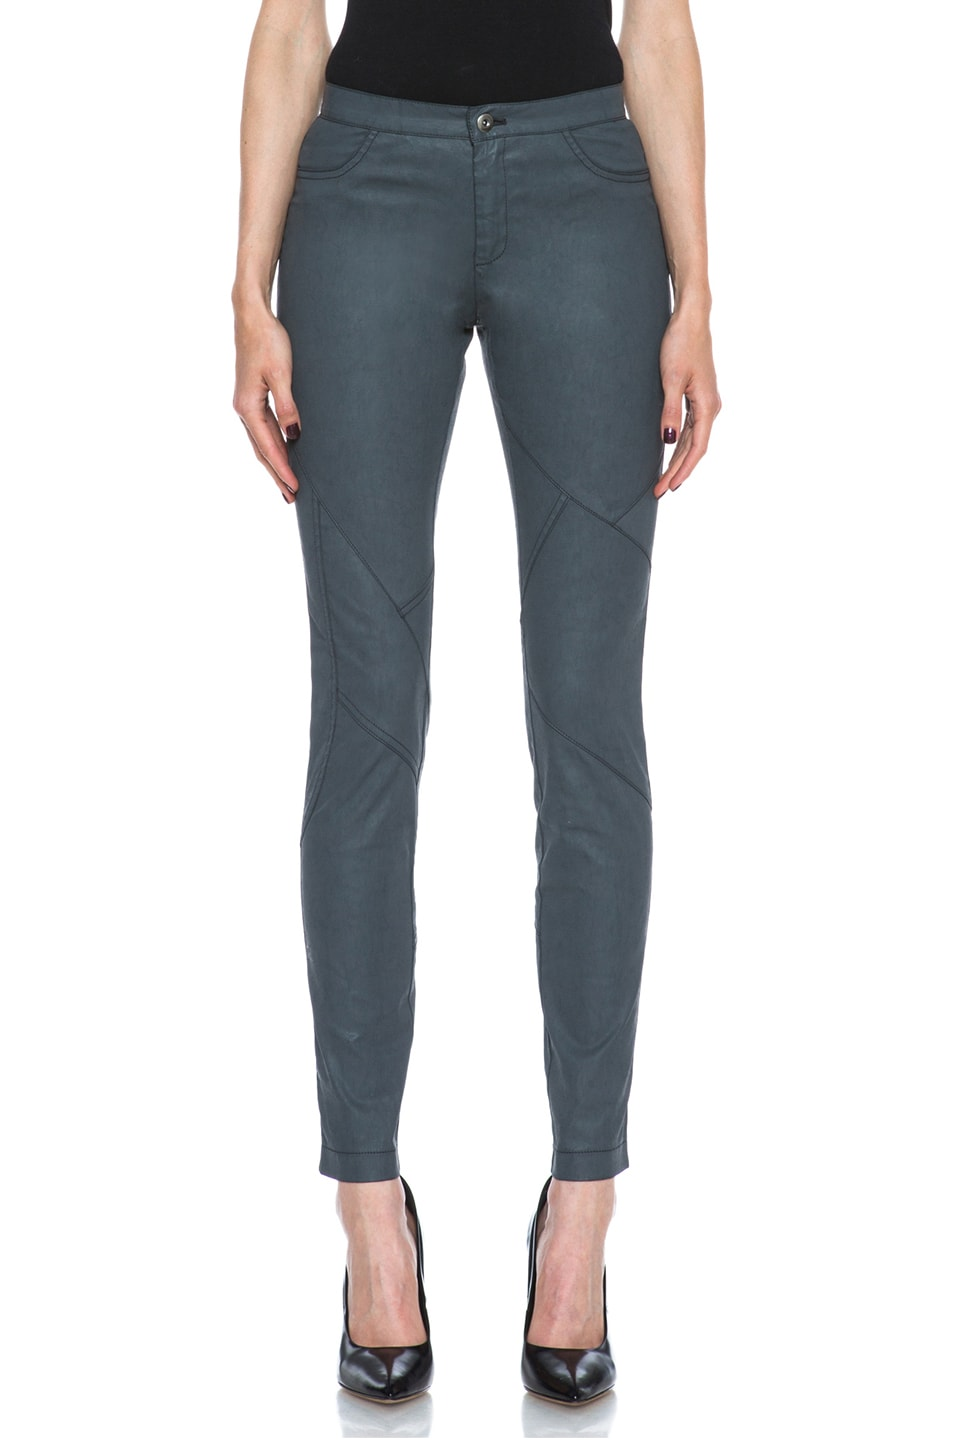 Image 1 of Tess Giberson Coated Cotton Pieced Legging in Charcoal